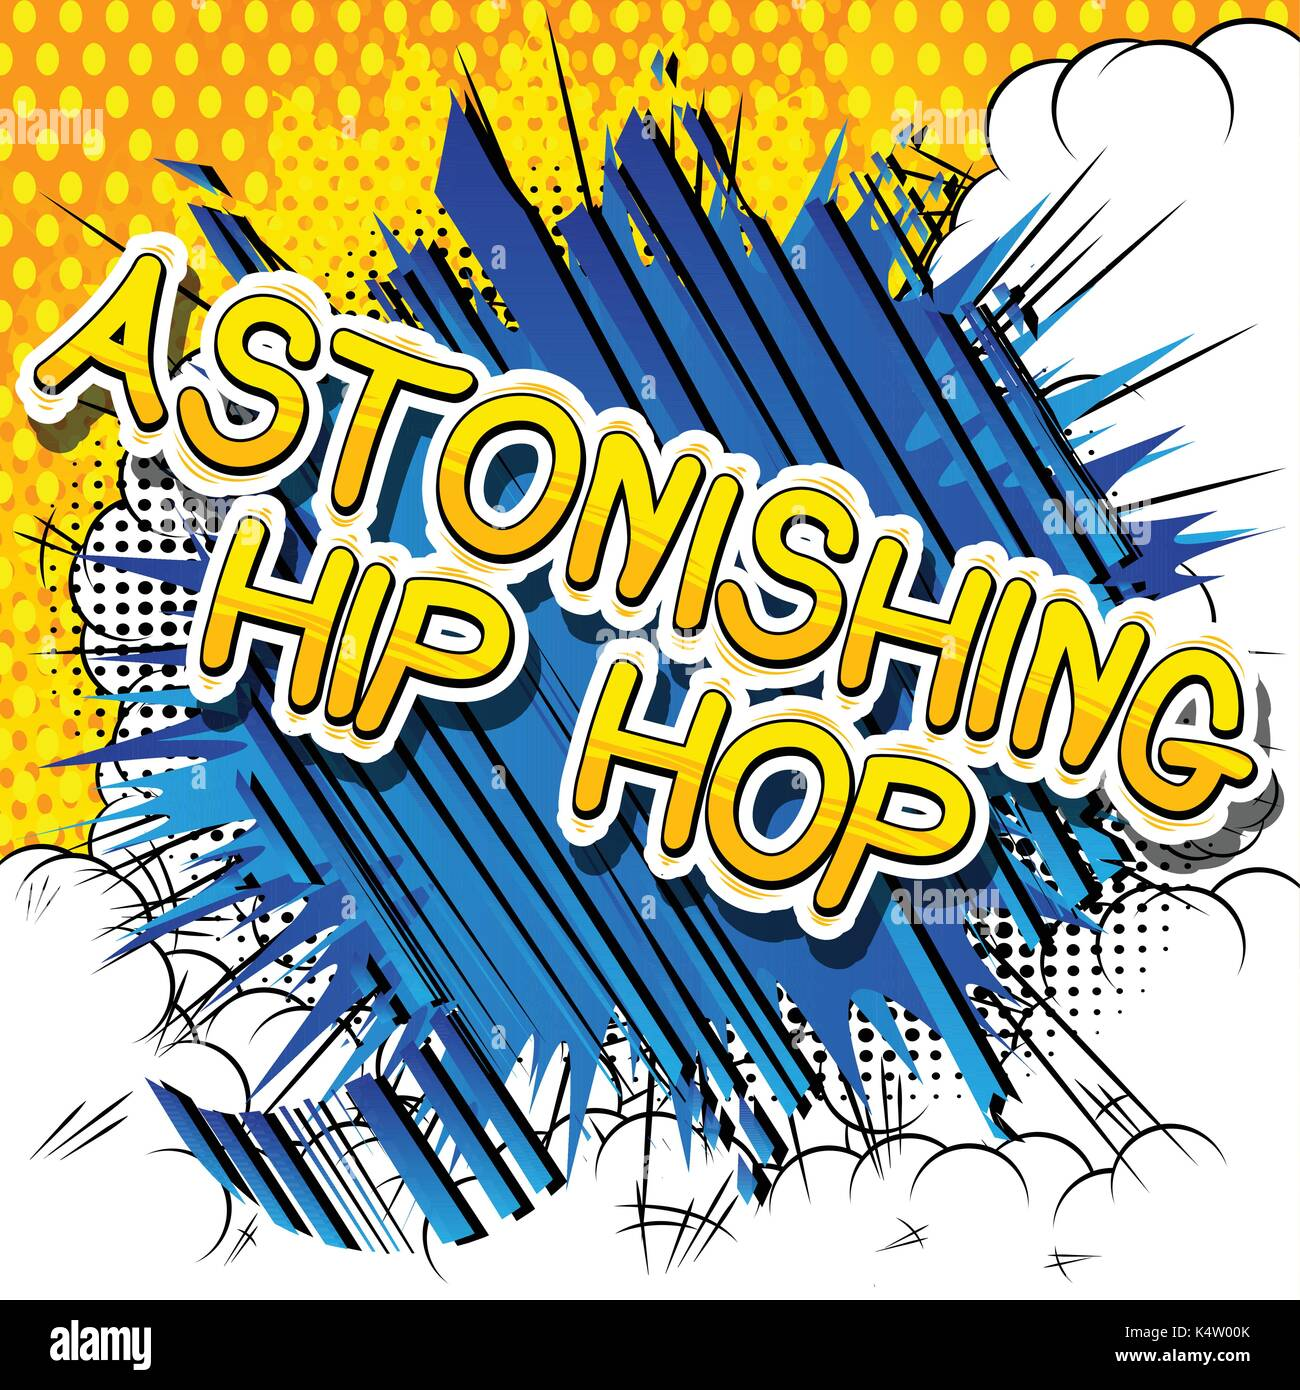 Astonishing Hip Hop - Comic book word on abstract background. Stock Vector